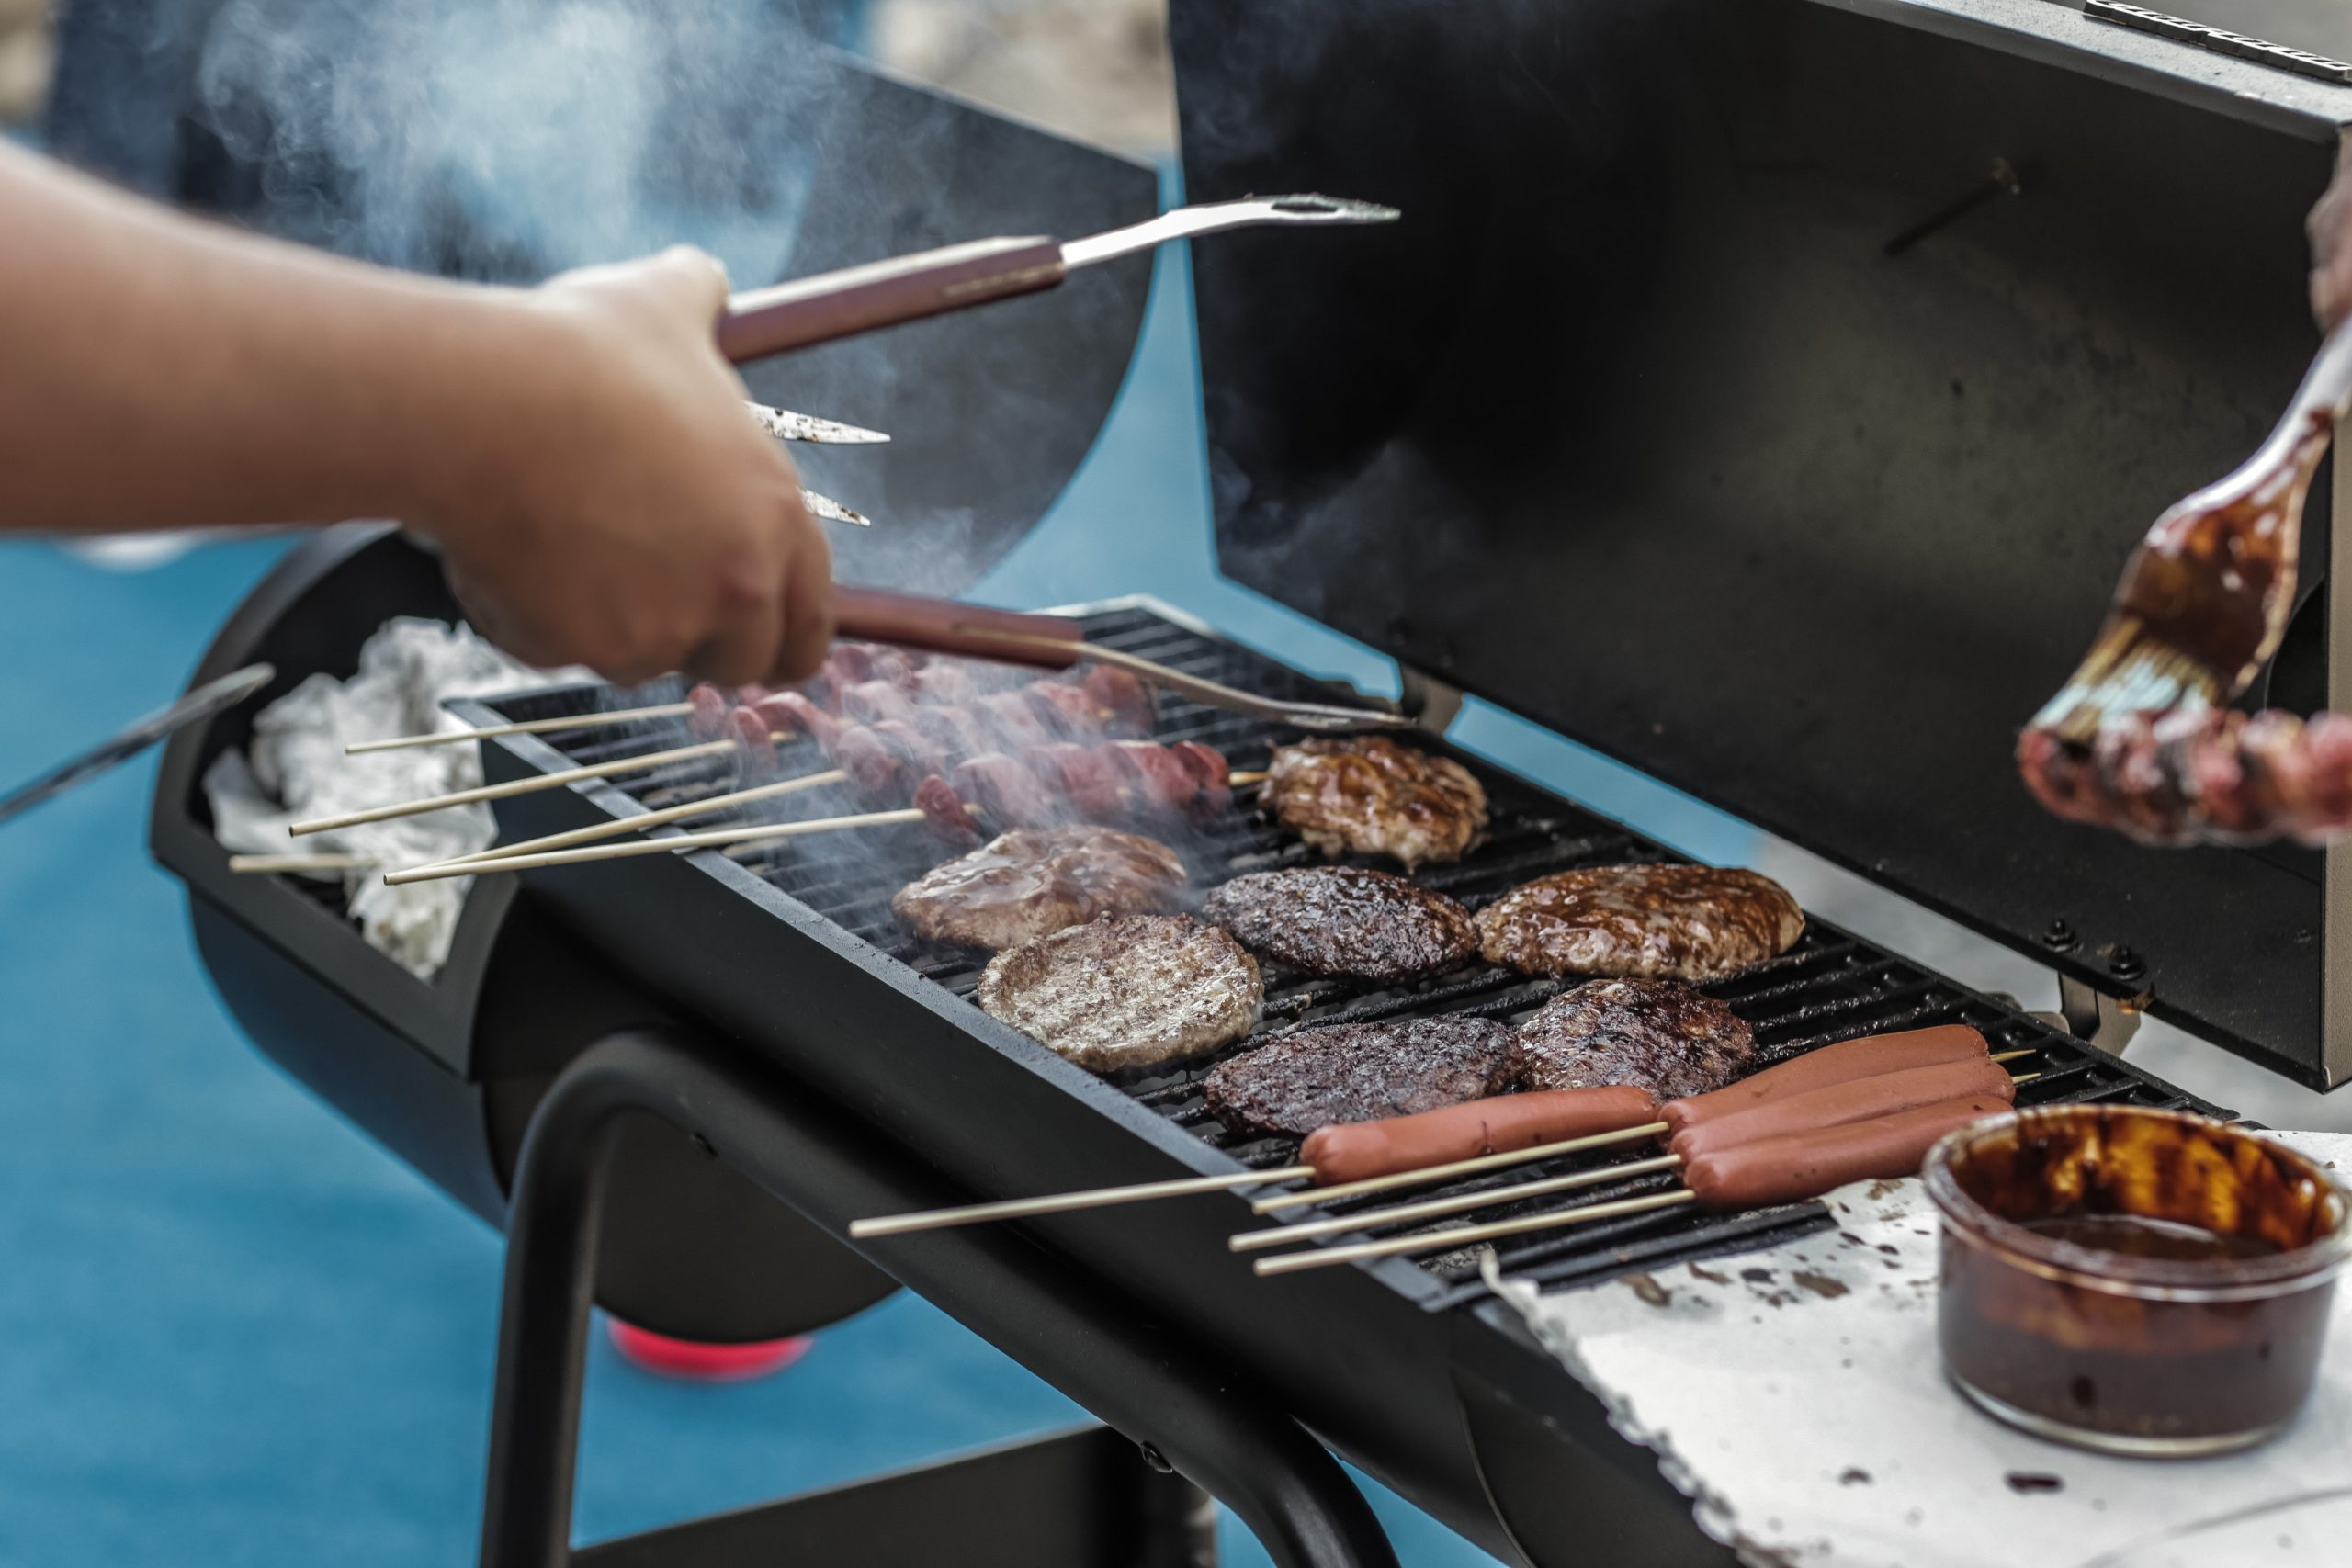 cooking burgers on best grill and griddle combo with tongs in hand